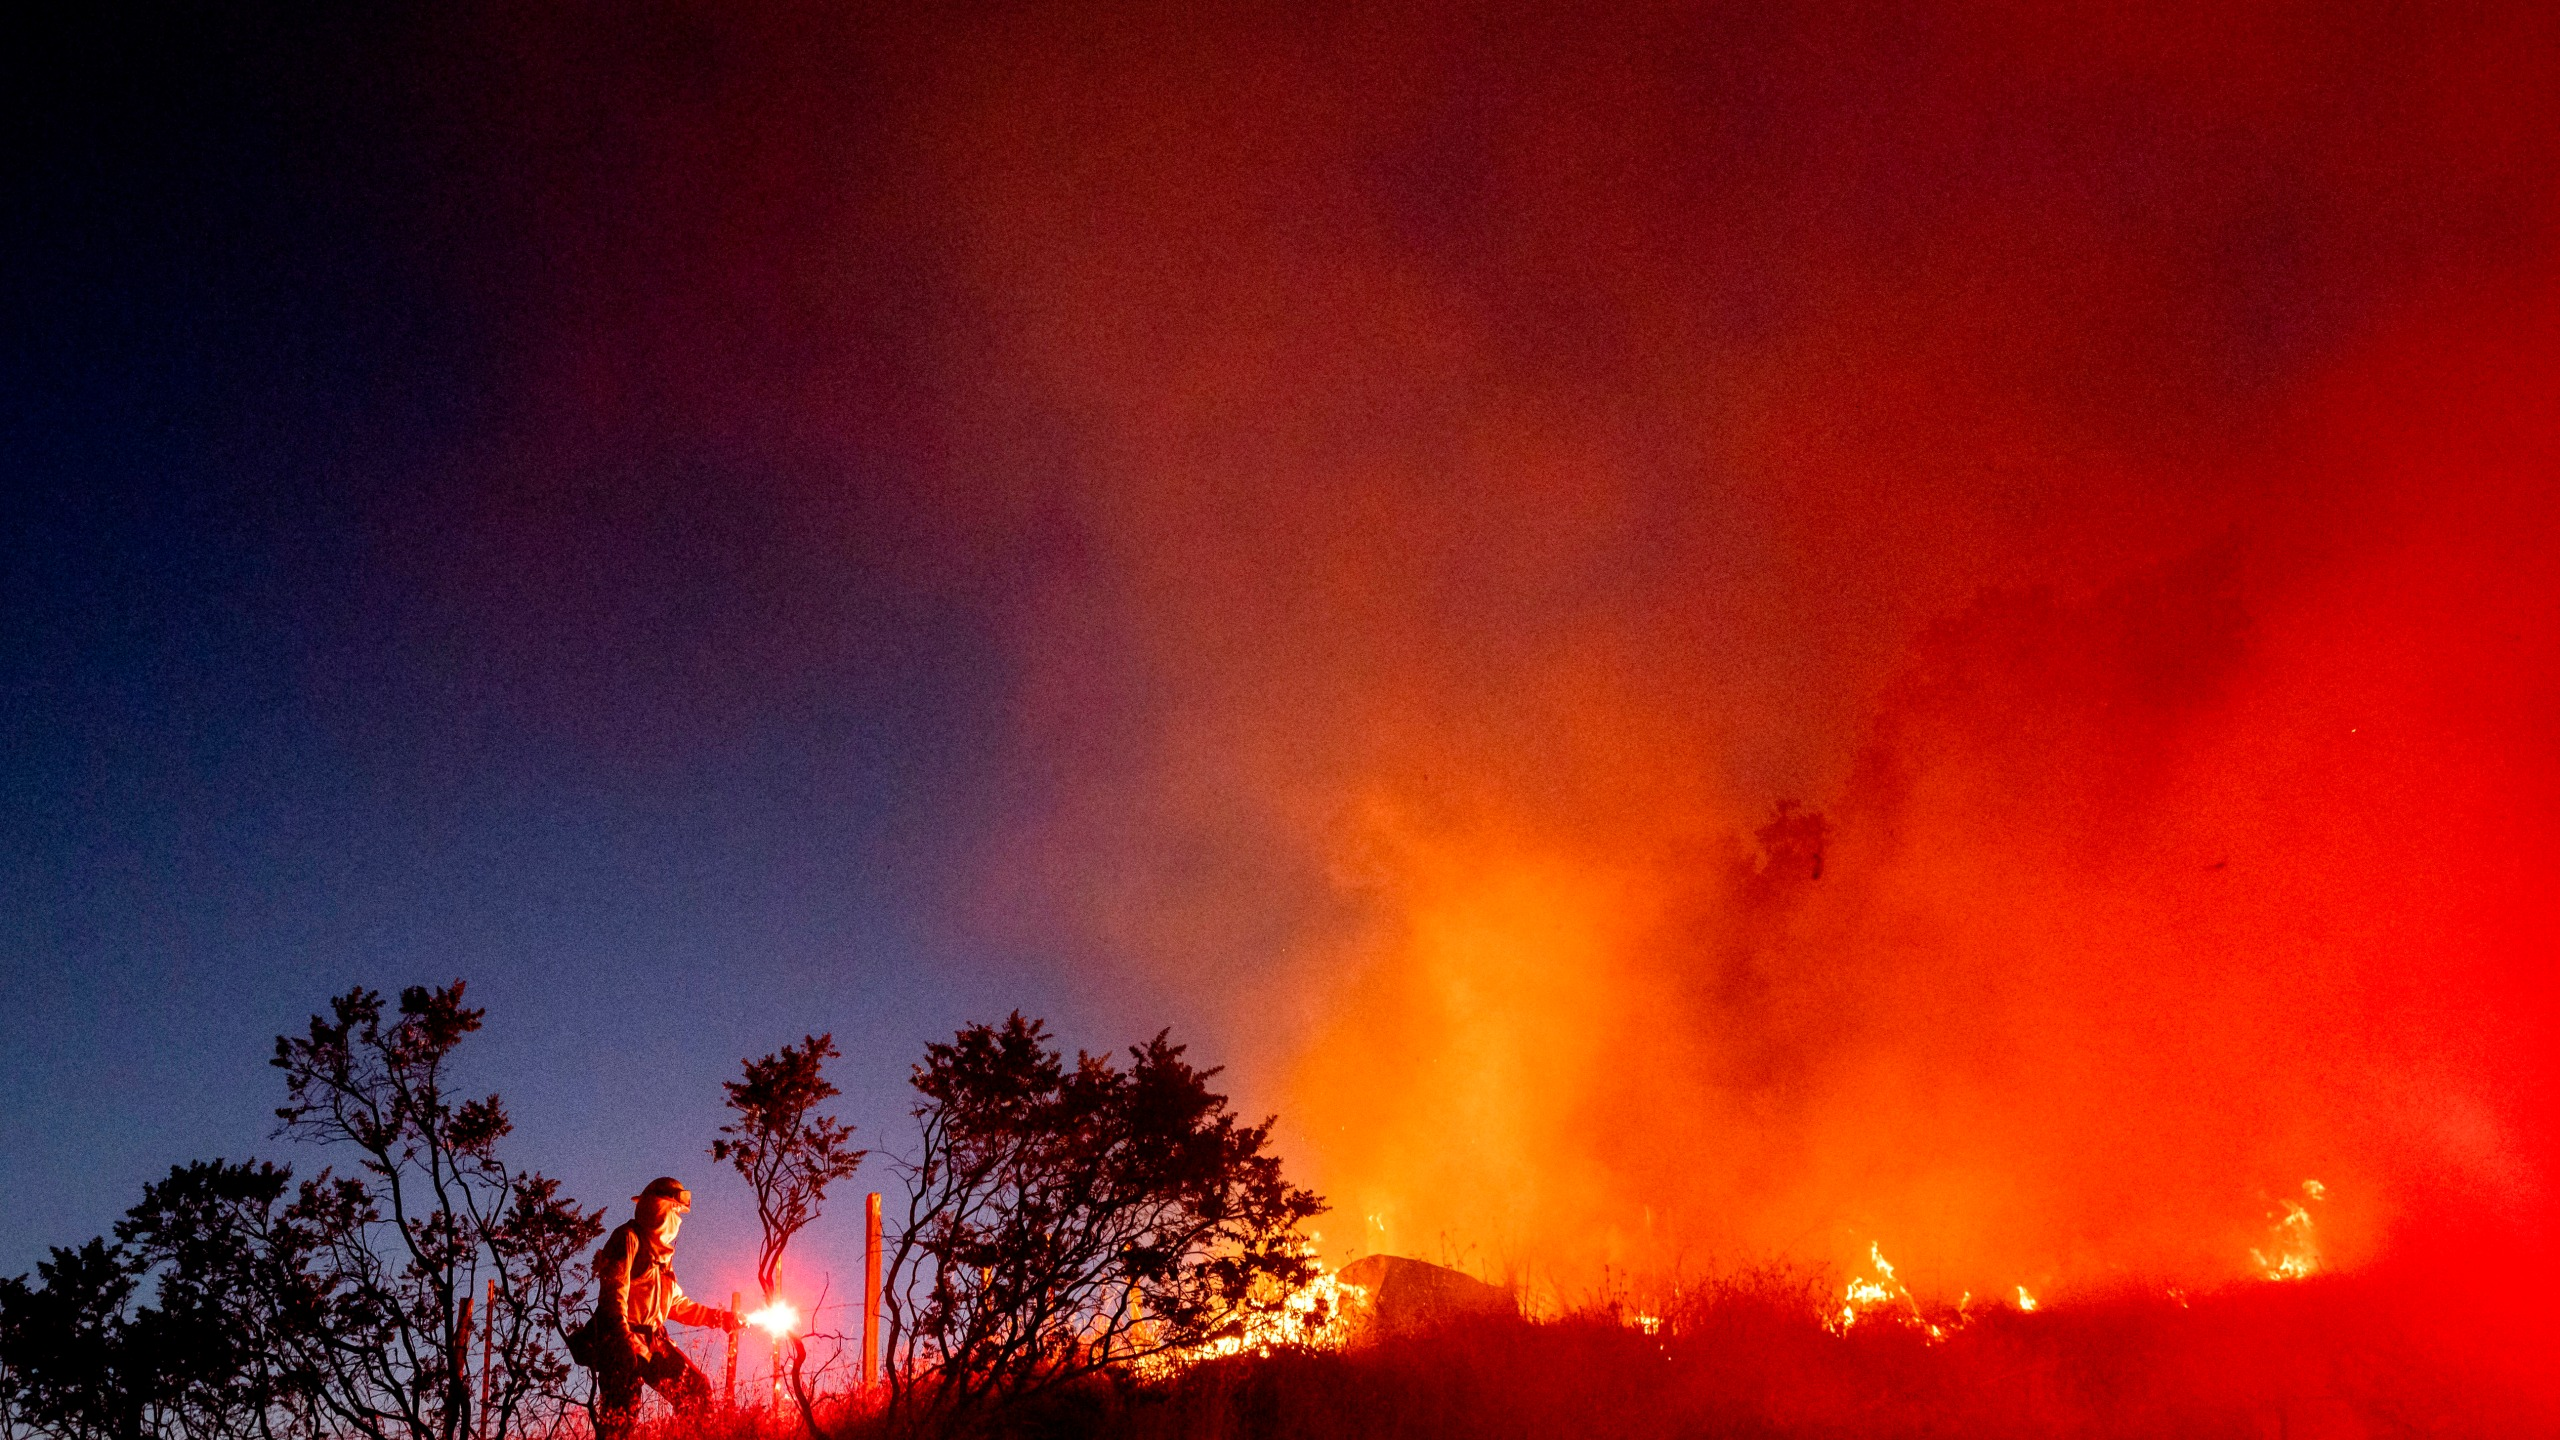 Firefighter Daniel Abarado lights a backfire while working to contain the Crews Fire near Gilroy on July 5, 2020. (AP Photo/Noah Berger)